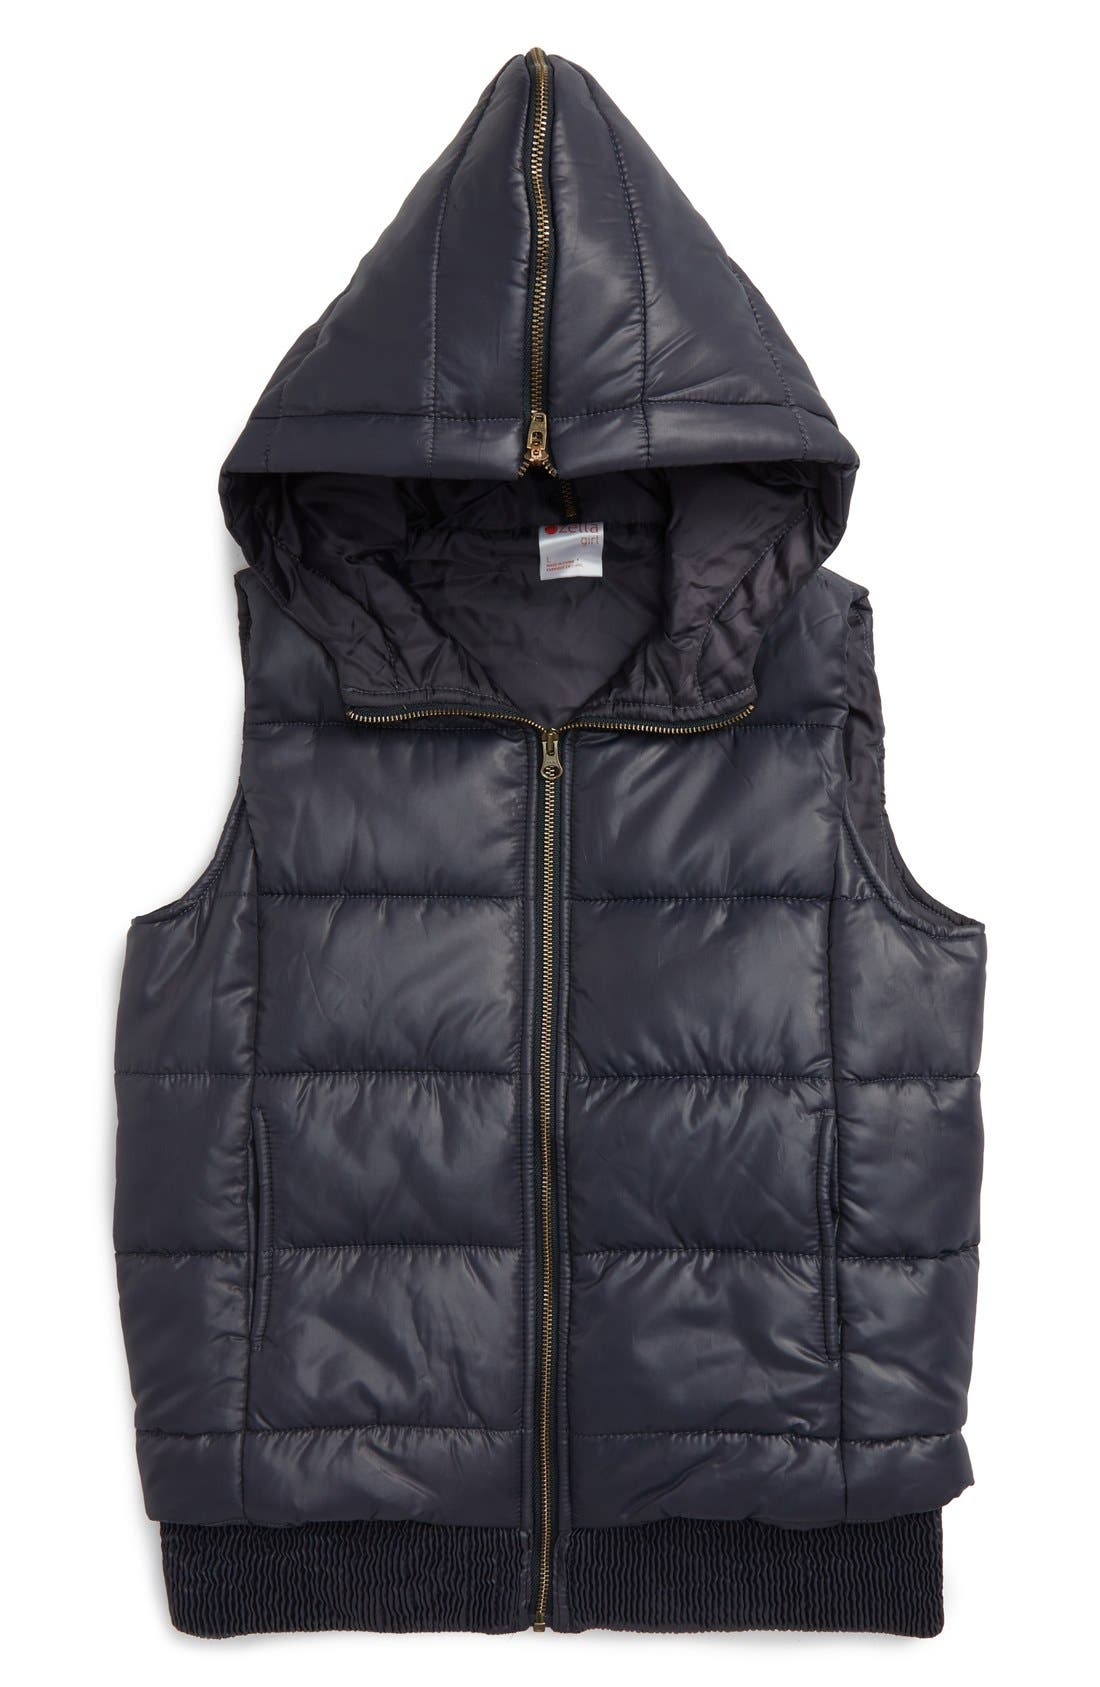 Alternate Image 1 Selected - Zella Girl Quilted Hooded Vest (Little Girls & Big Girls)